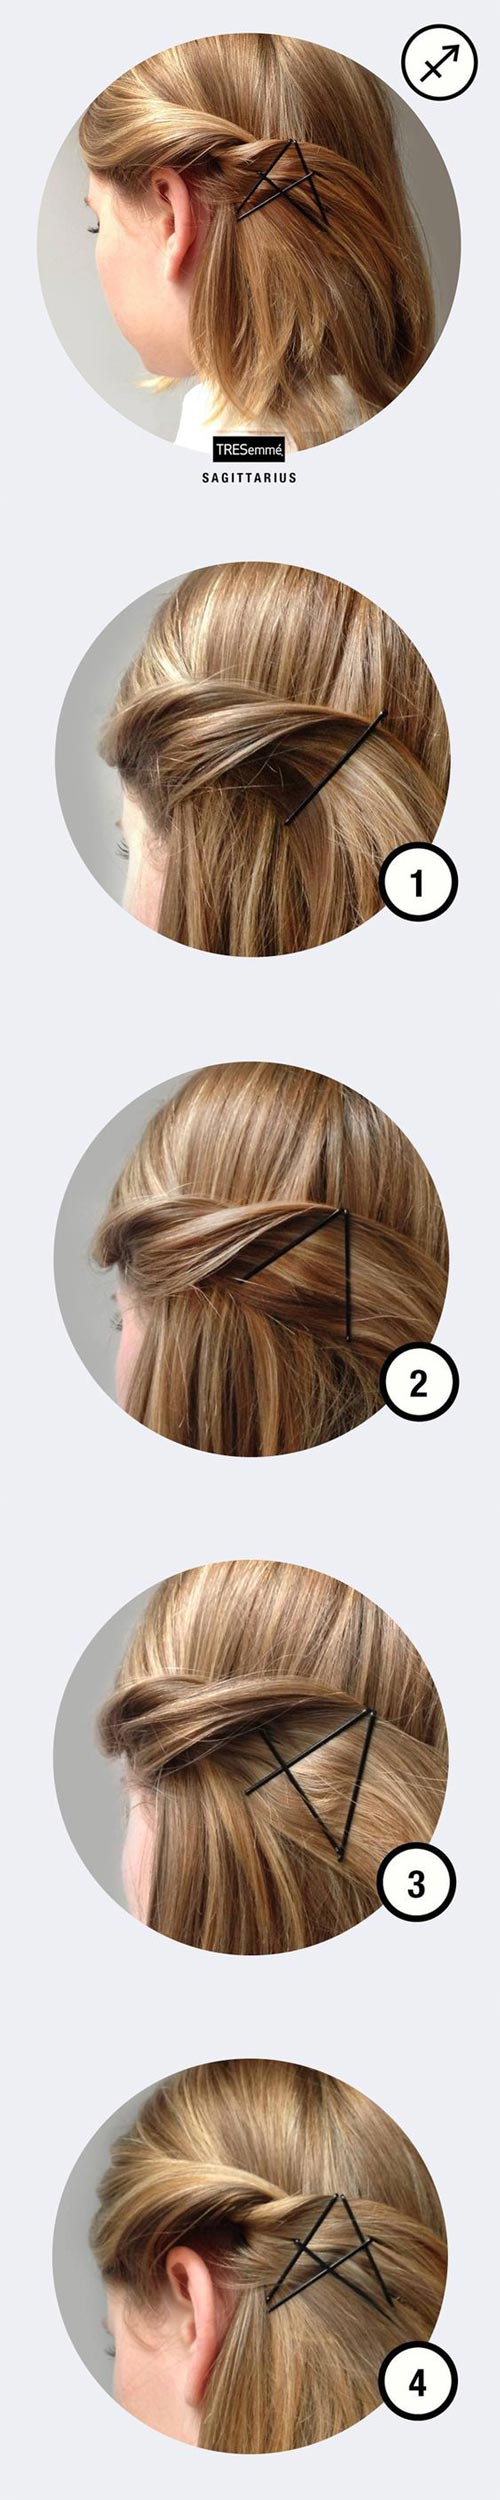 star bobby pin tutorial